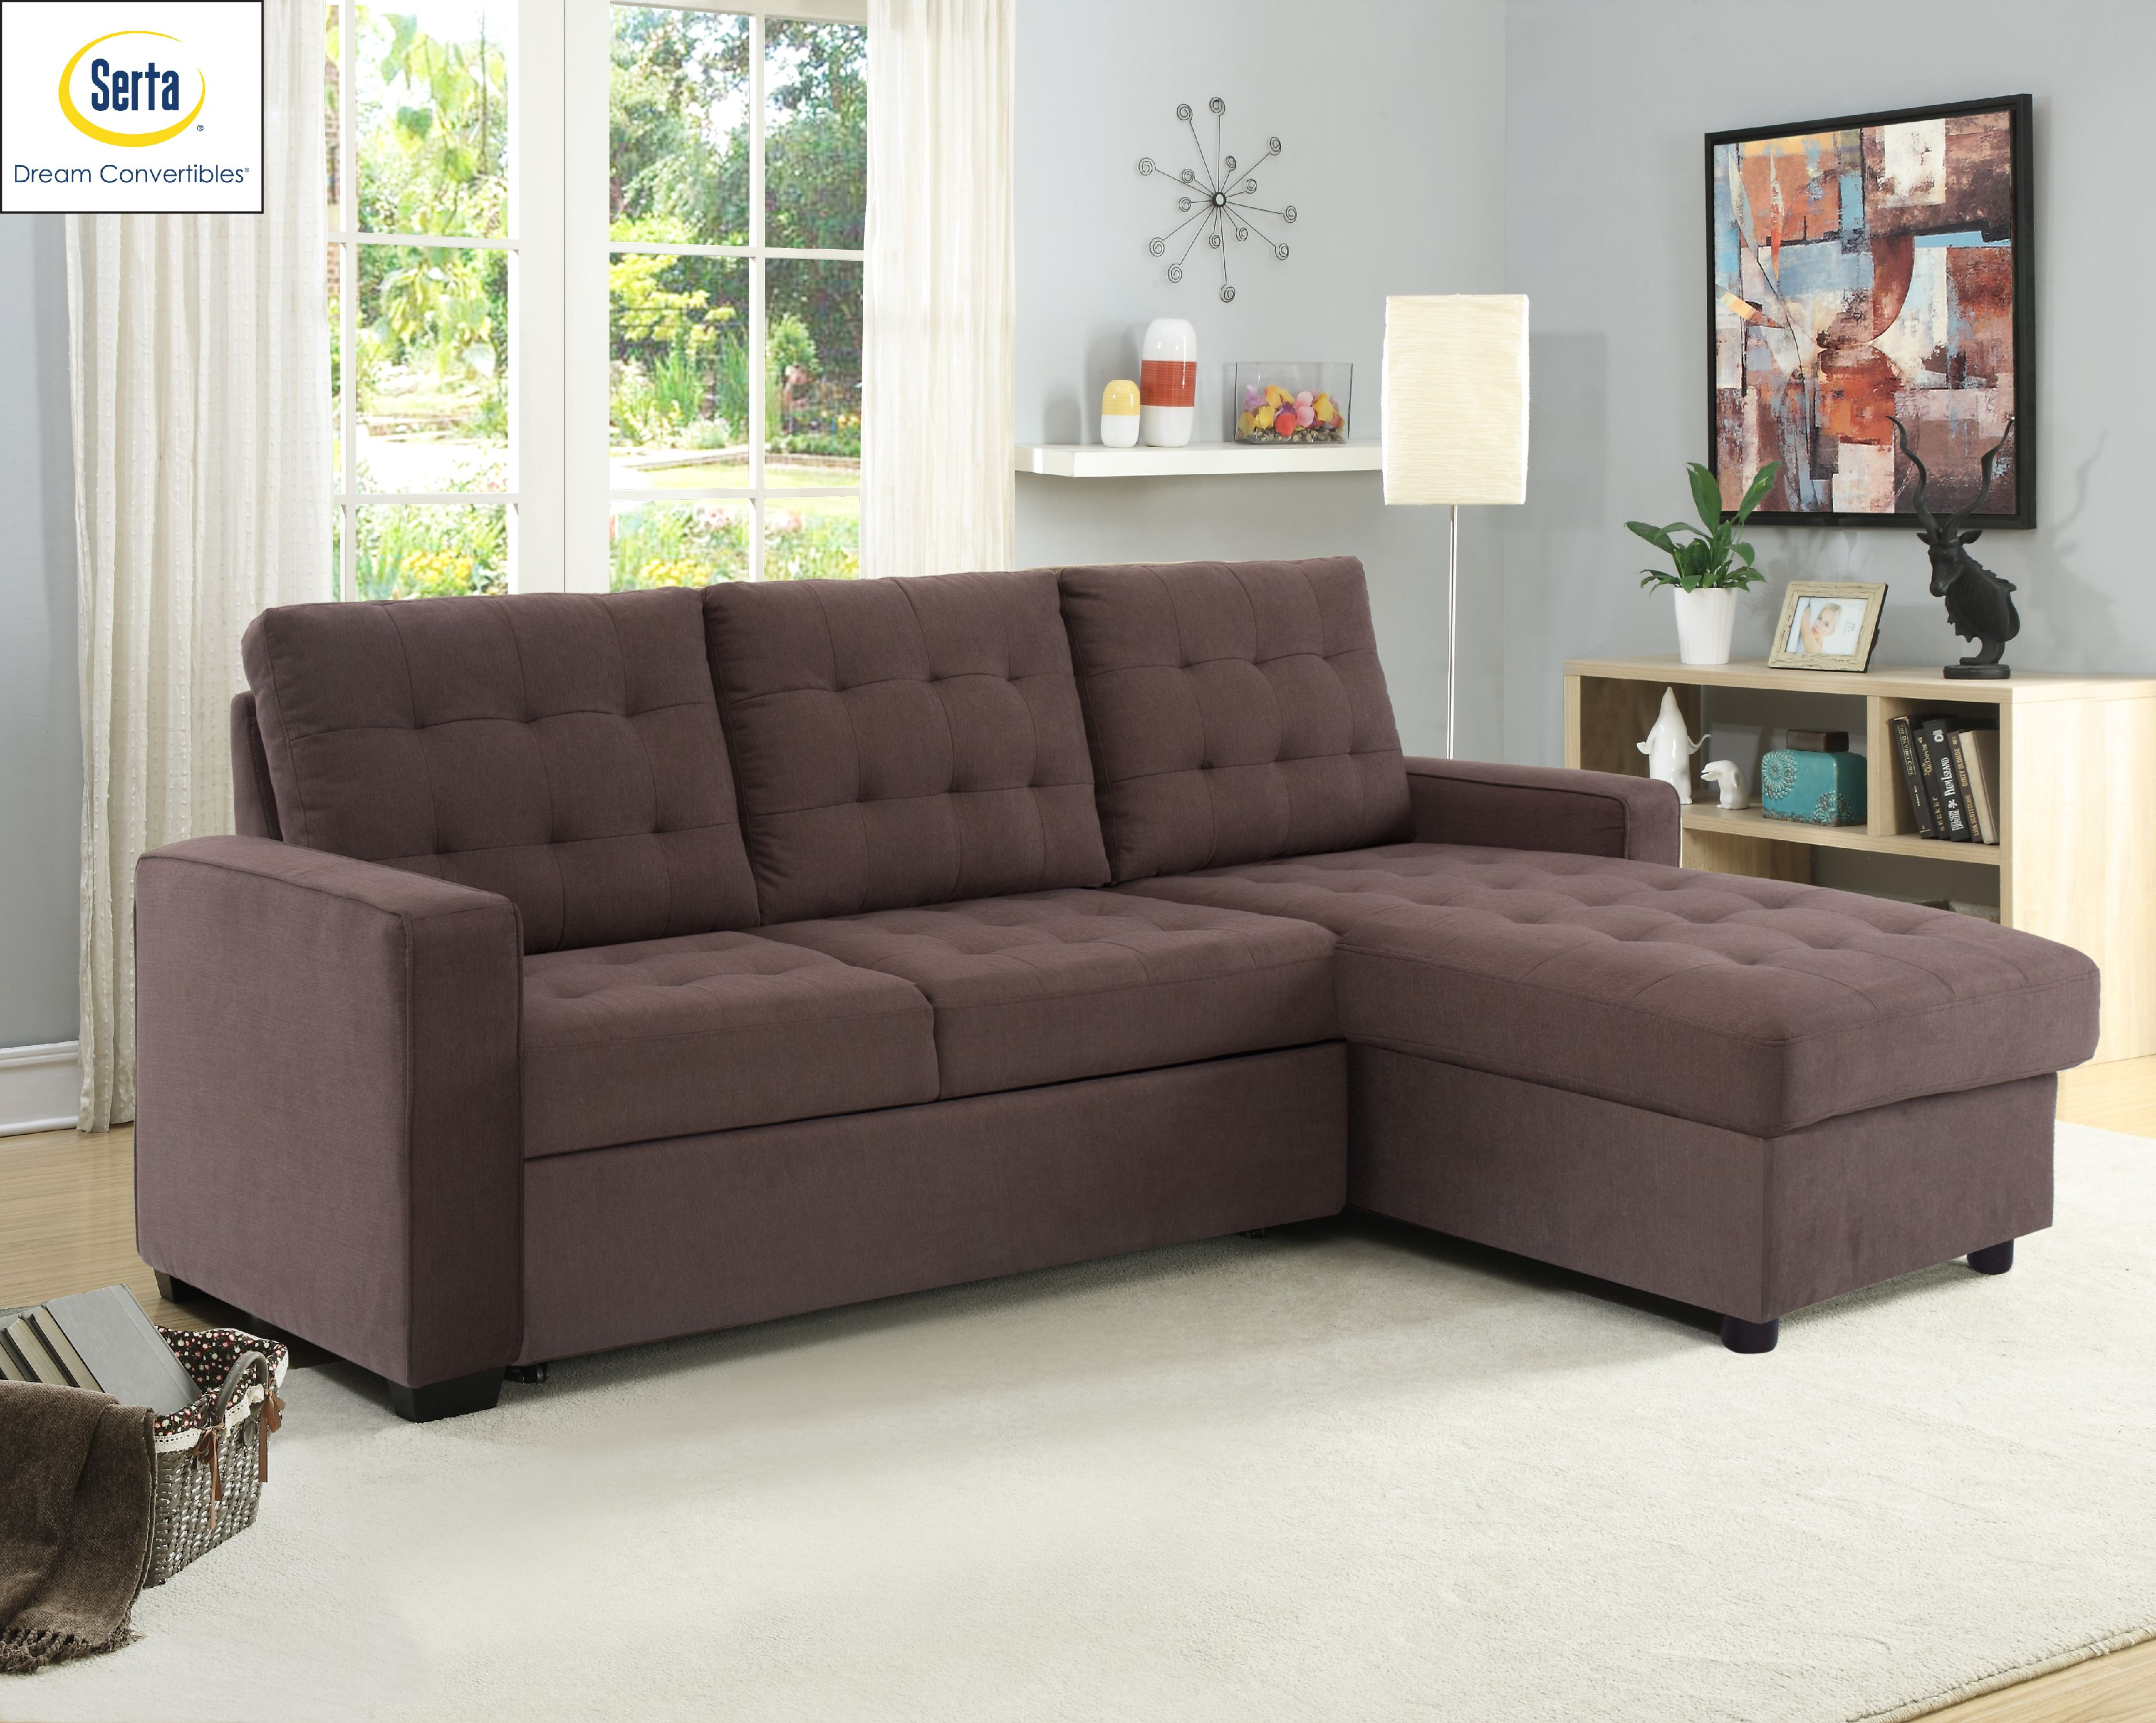 Lifestyle Solutions Serta Bostal Sectional Sofa Convertible: Converts into  a Sofa, Bed, and Chaise with Storage, Espresso - Walmart.com